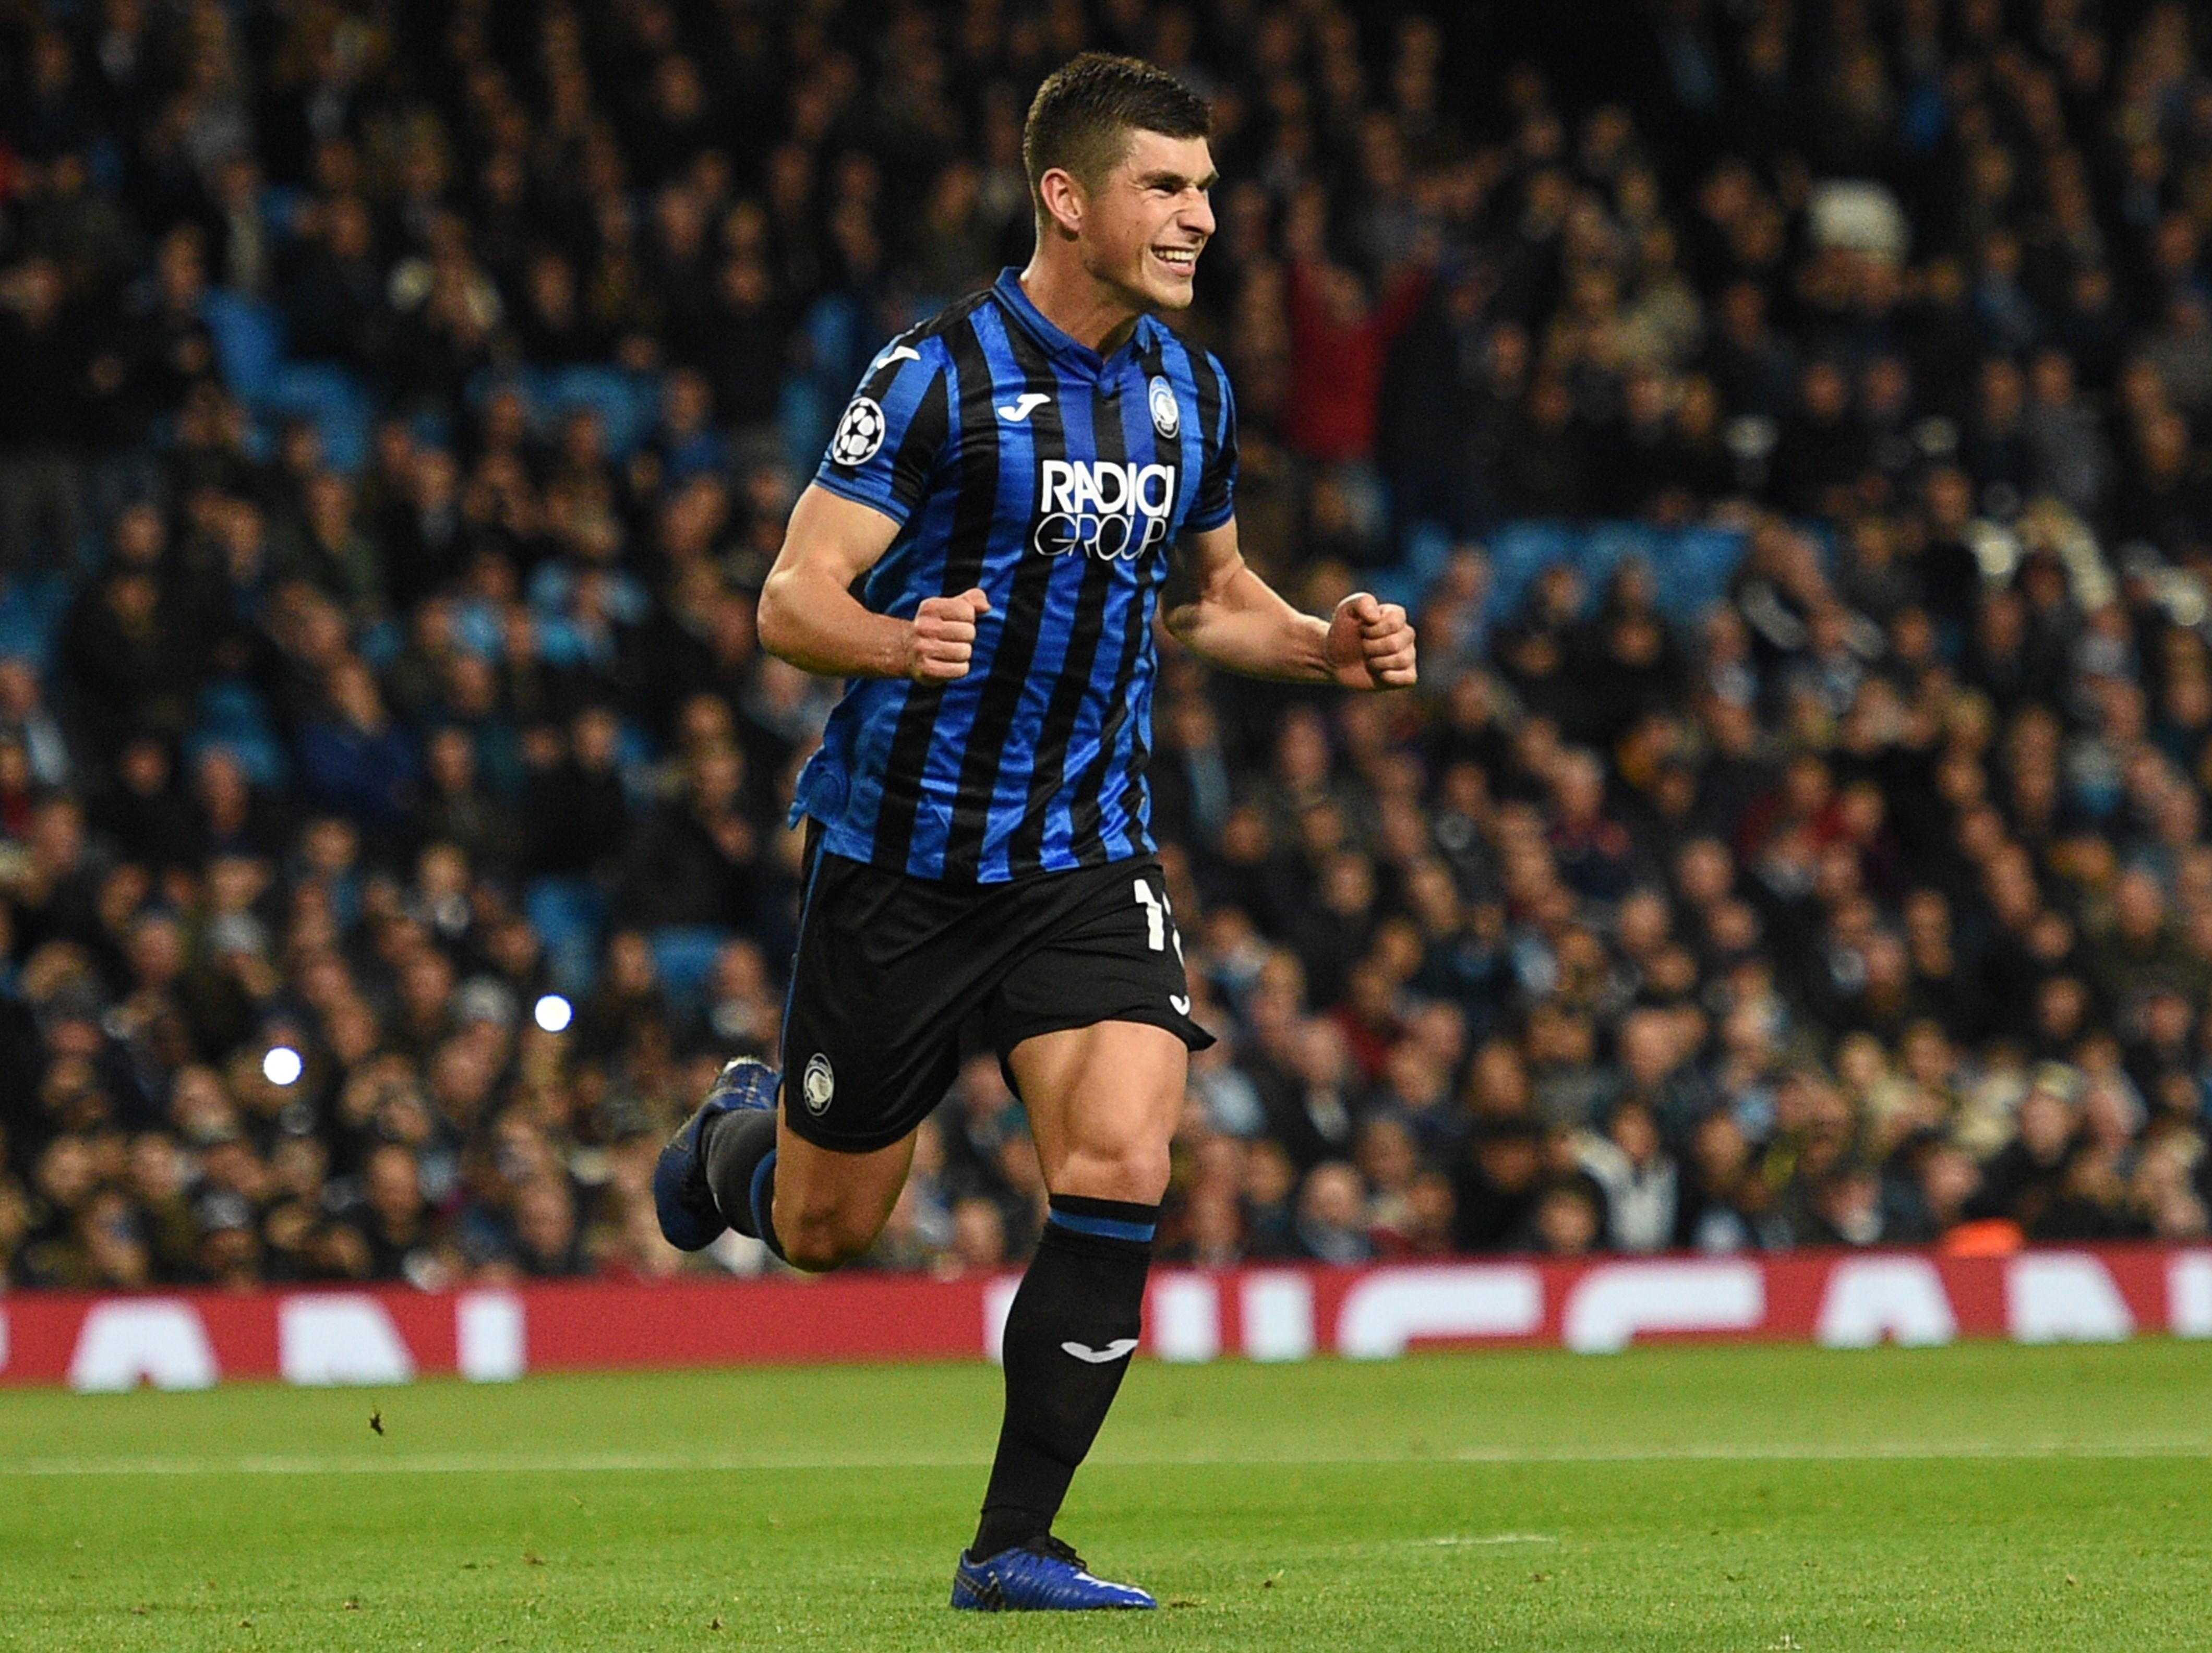 Atalanta's Ukrainian midfielder Ruslan Malinovskyi celebrates scoring the opening goal from the penalty spot during the UEFA Champions League Group C football match between Manchester City and Atalanta at the Etihad Stadium in Manchester